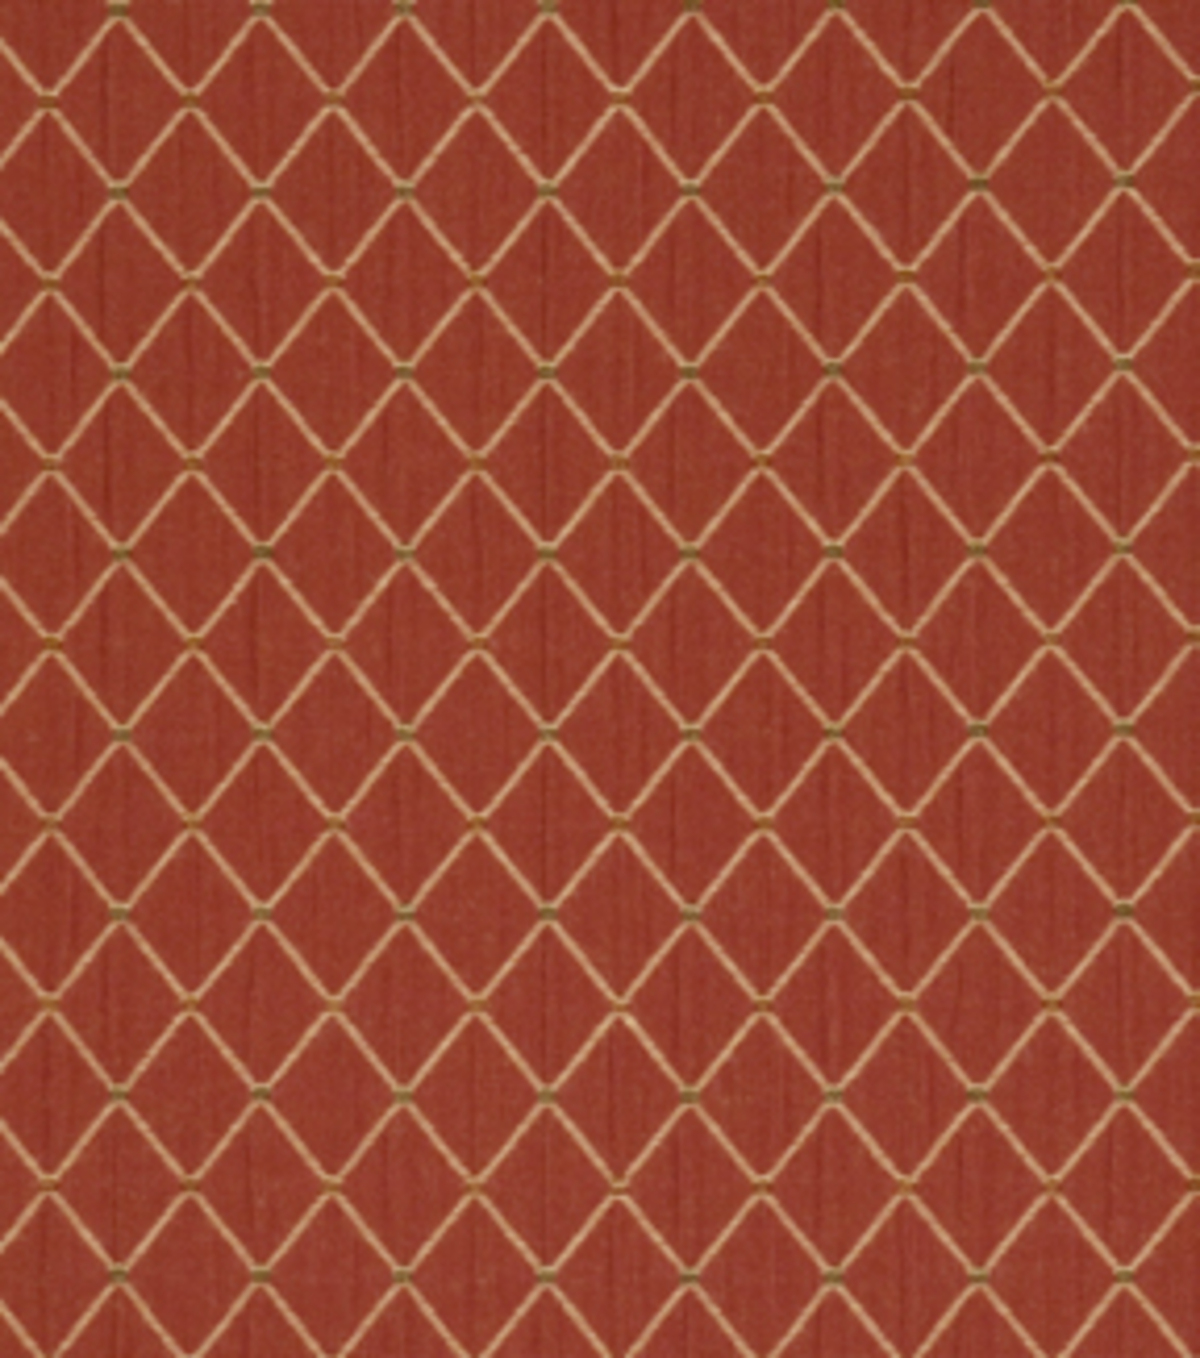 "Home Decor 8""x8"" Fabric Swatch-Upholstery Fabric Eaton Square Restful Brick"